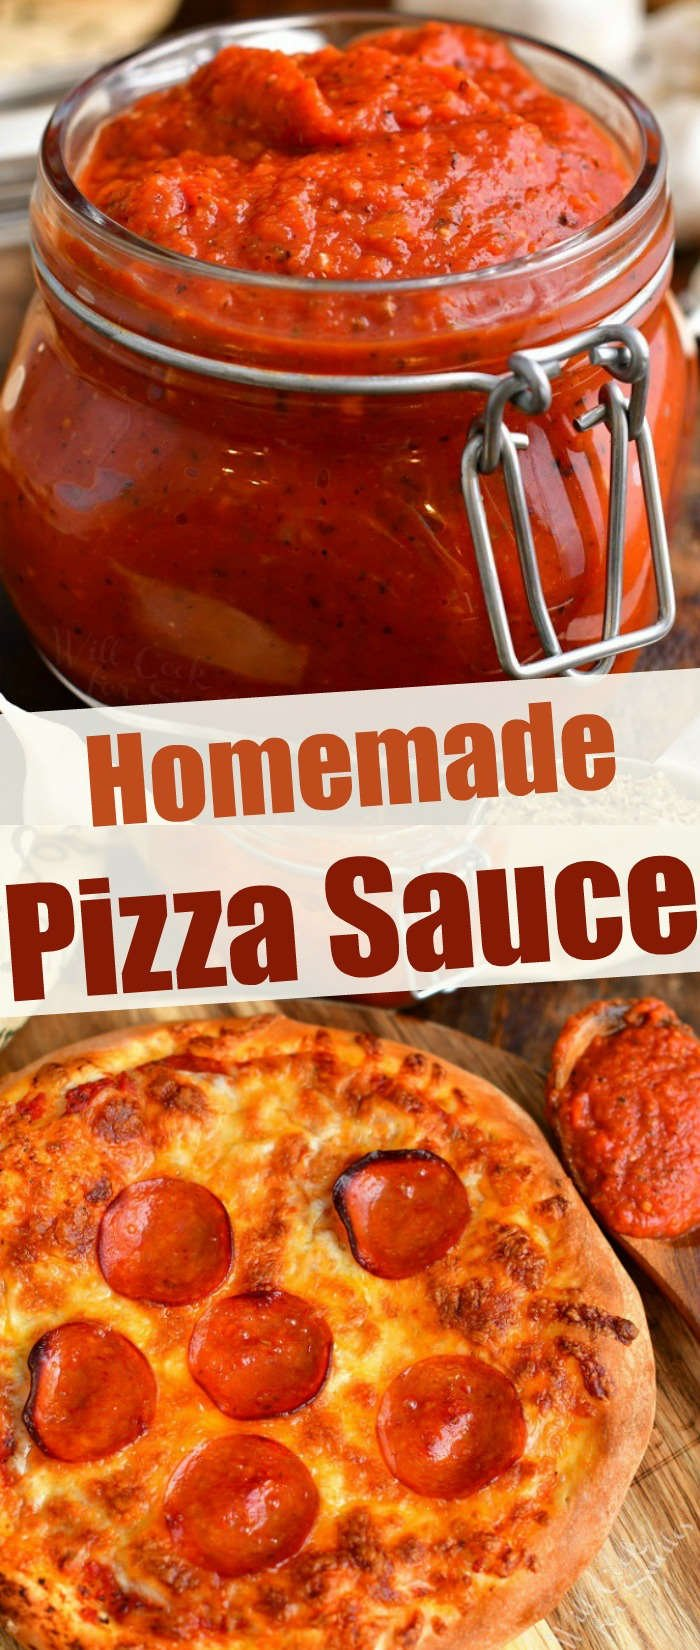 "titled photo collage ""Homemade Pizza Sauce"" shows sauce in jar and on a baked pepperoni pizza"